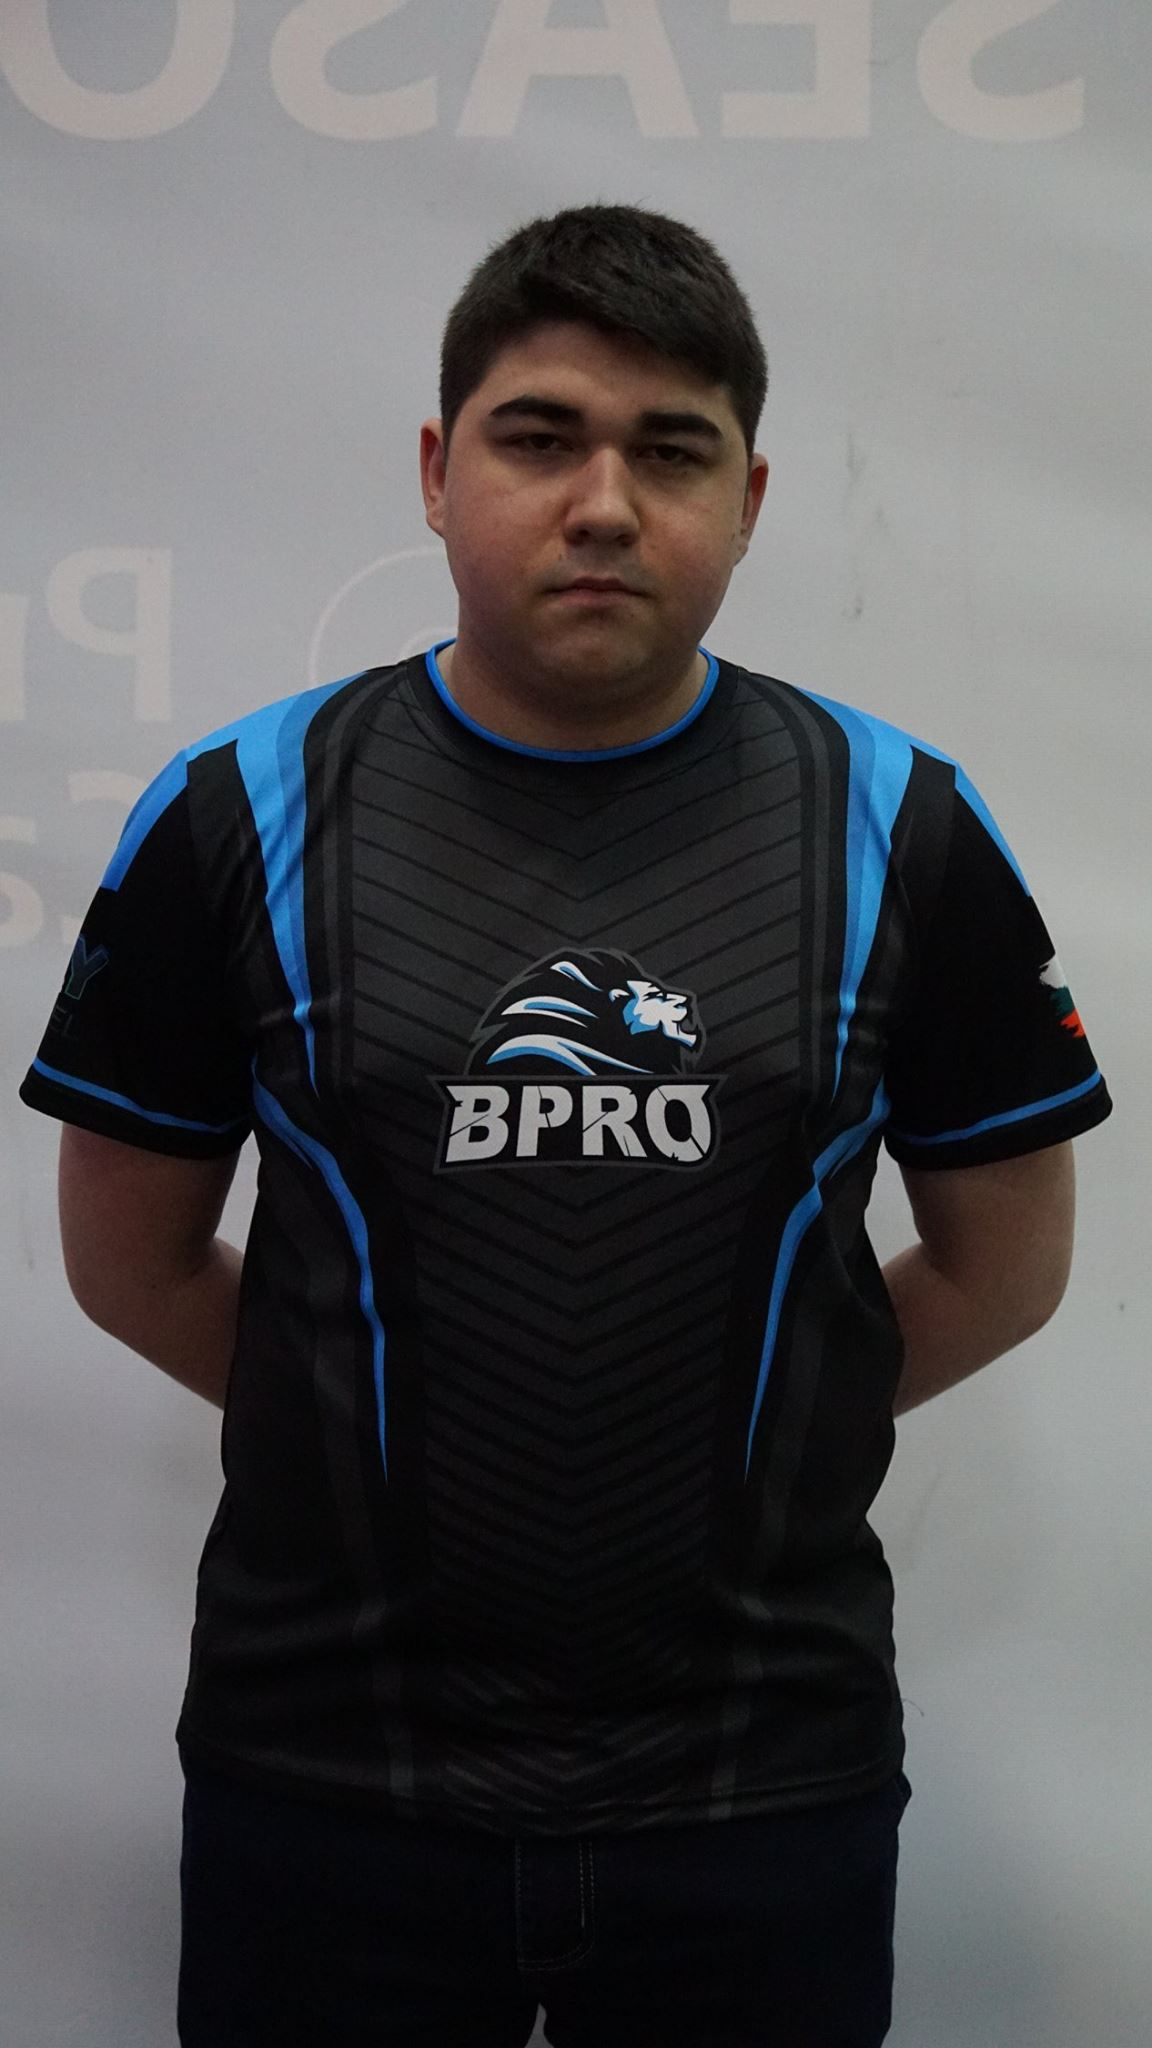 Ianko Panov Blocker BPro Gaming